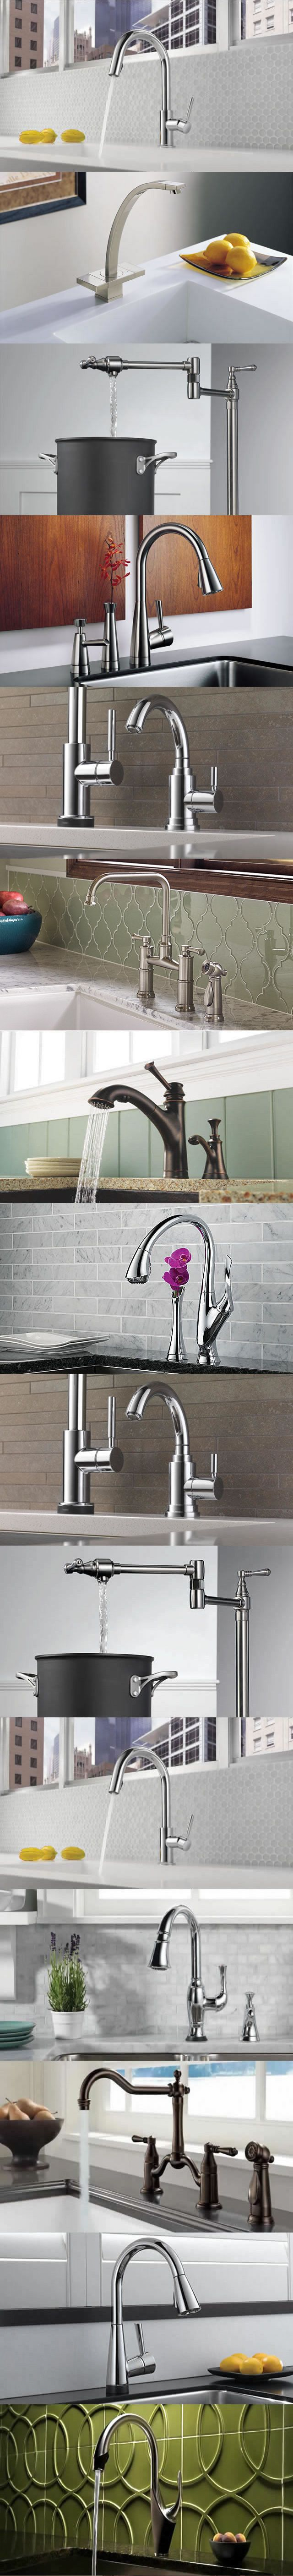 brizo brizo kitchen faucets Brizo kitchen faucets and accessories bring fashion forward style and innovative function to the heart of your home